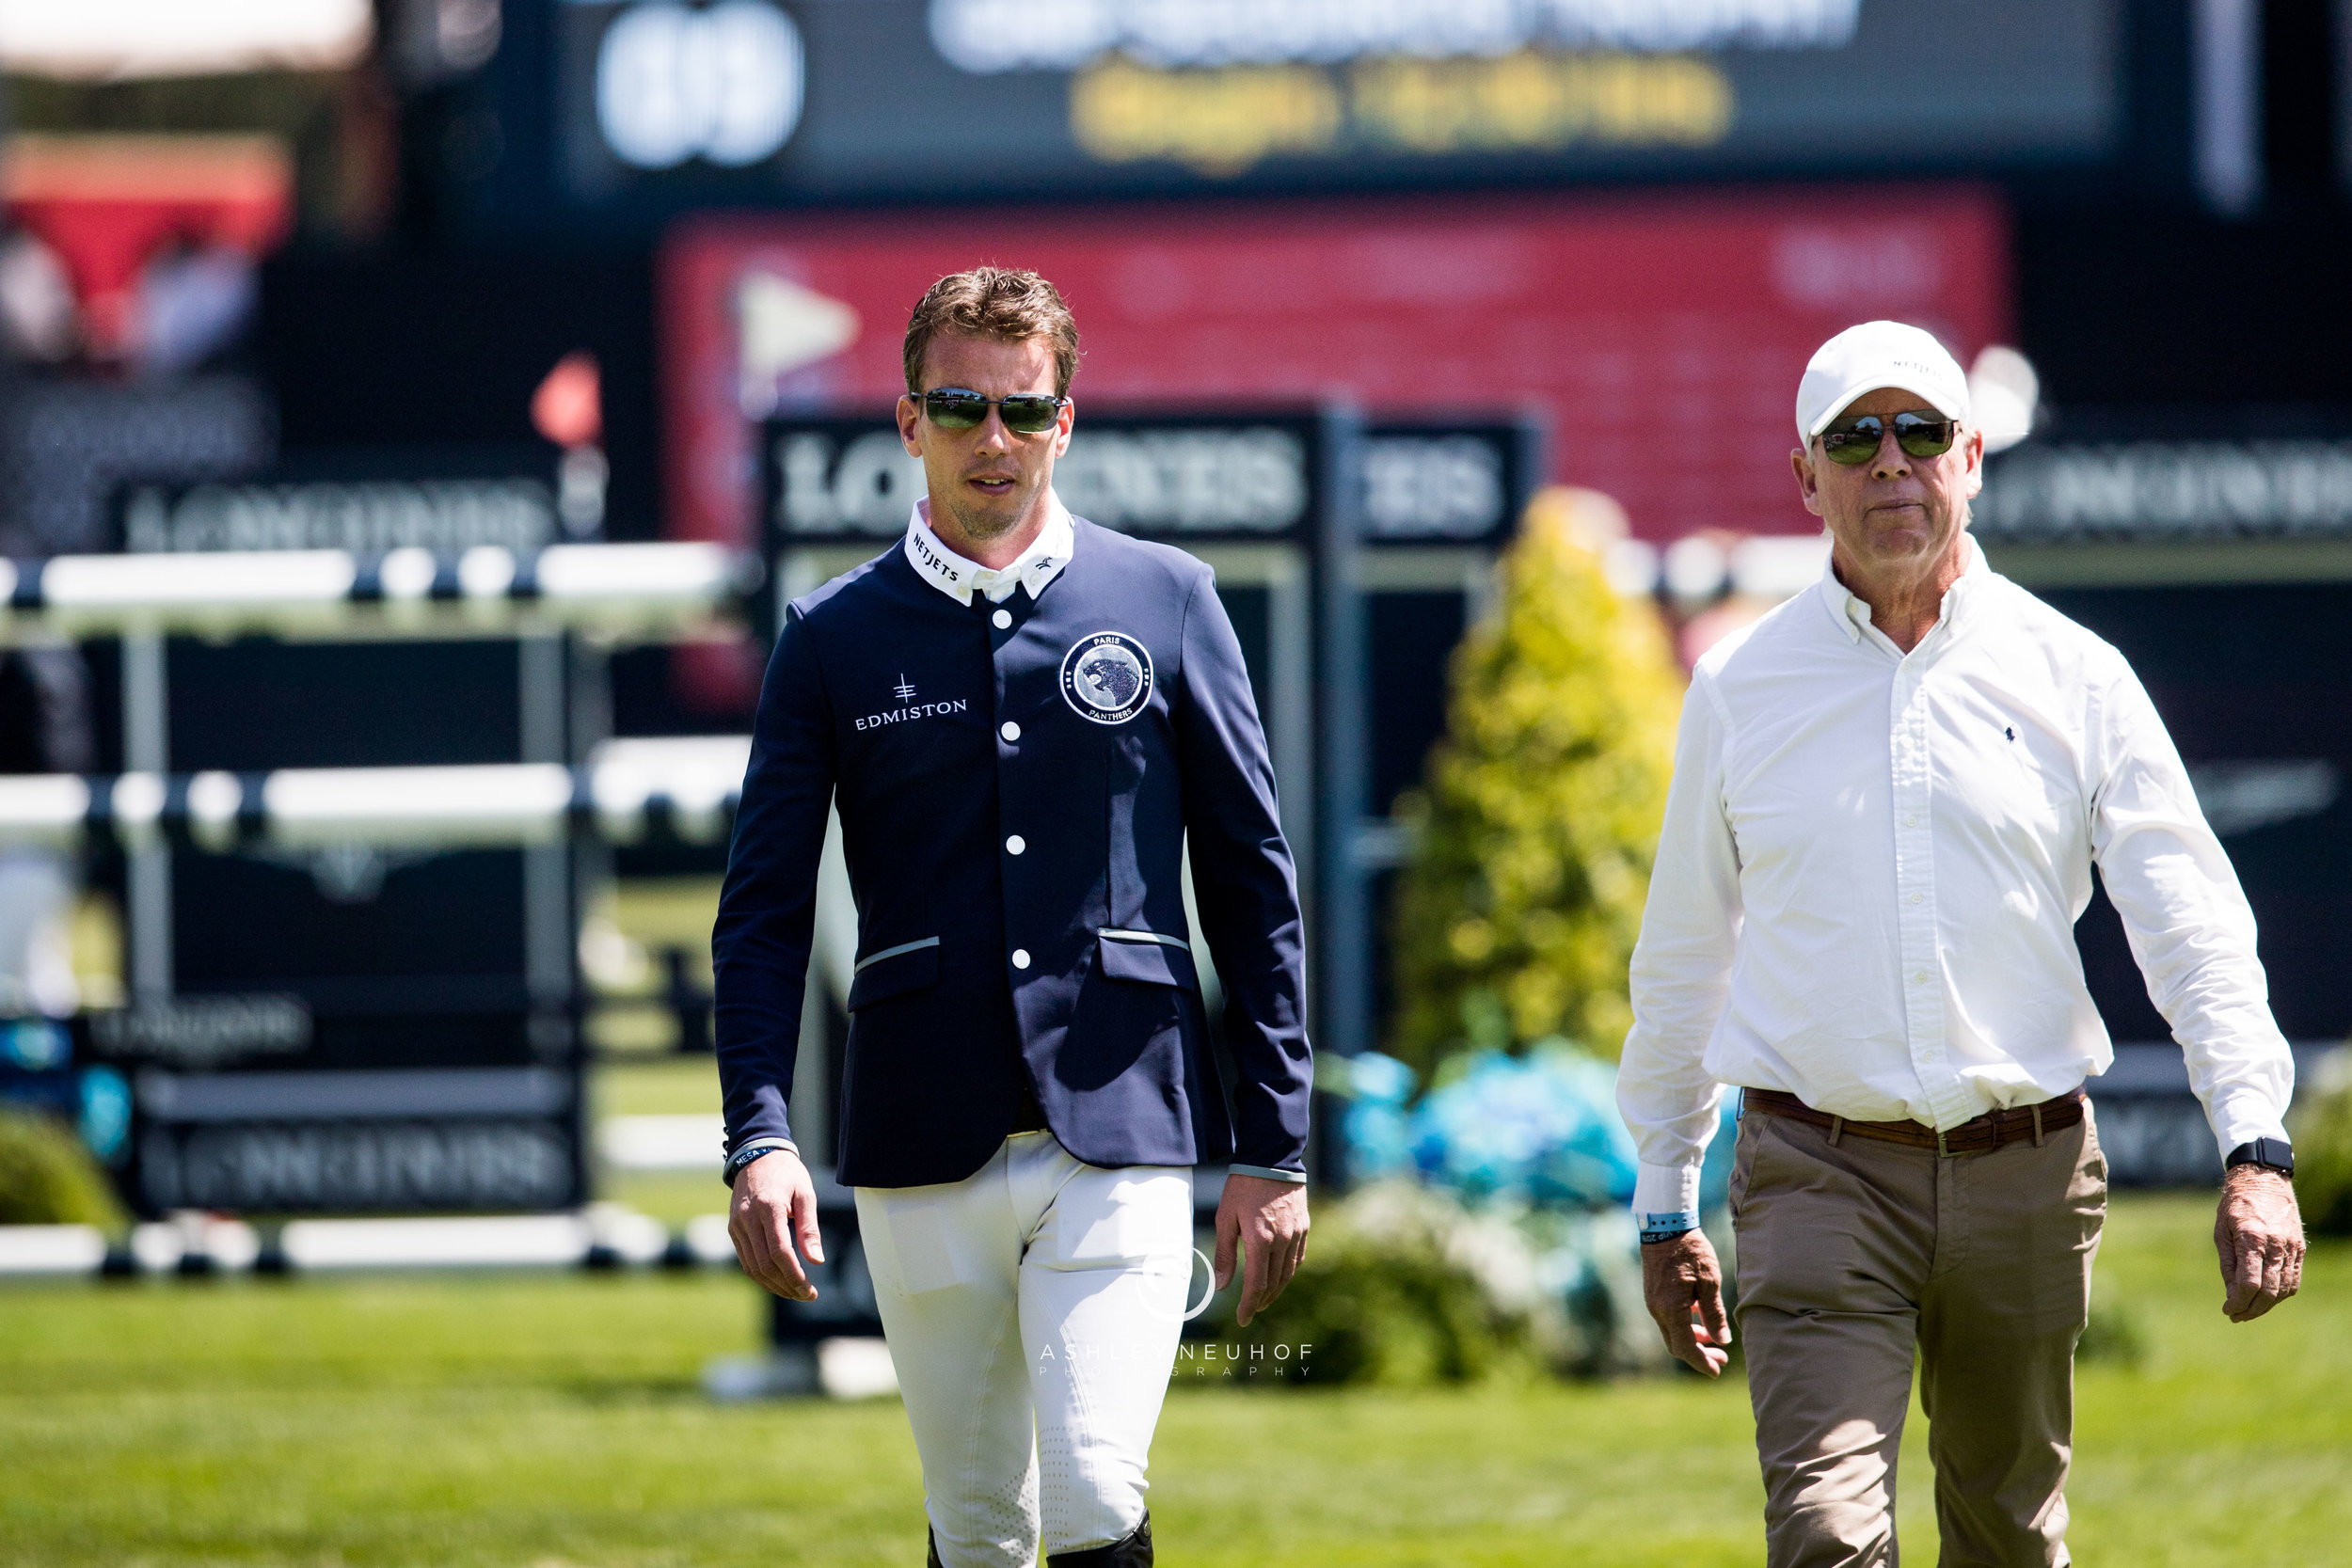 Harrie Smolders and Rob Hoekstra at Global Champions League of Mexico 2019. Photo by Ashley Neuhof Photography.